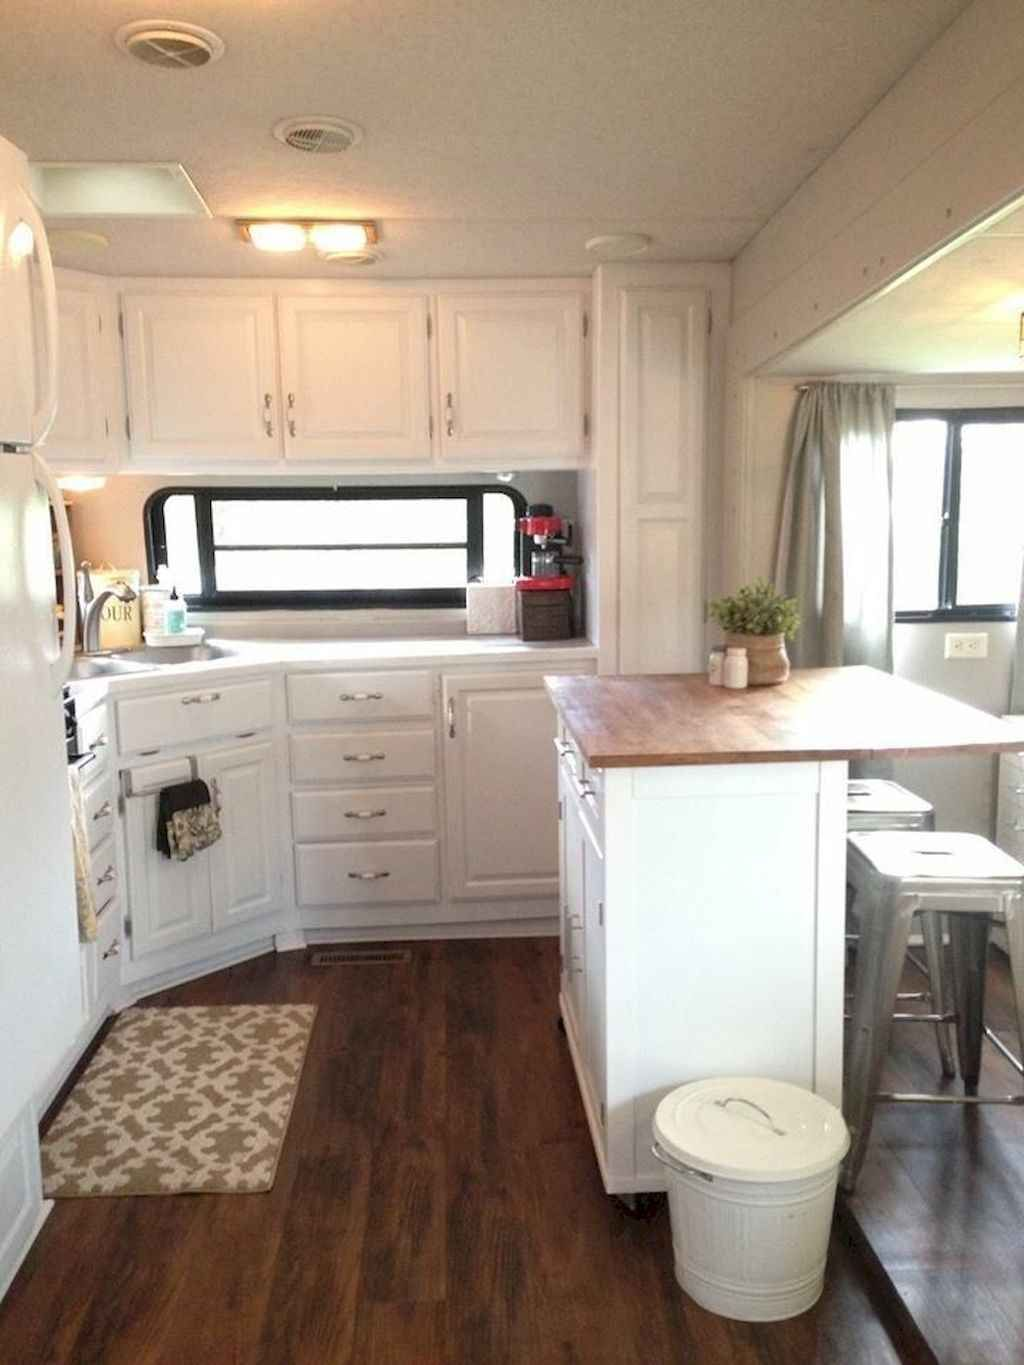 50 RV Living & Camper Van Storage Solution Ideas - Gladecor.com #rvliving